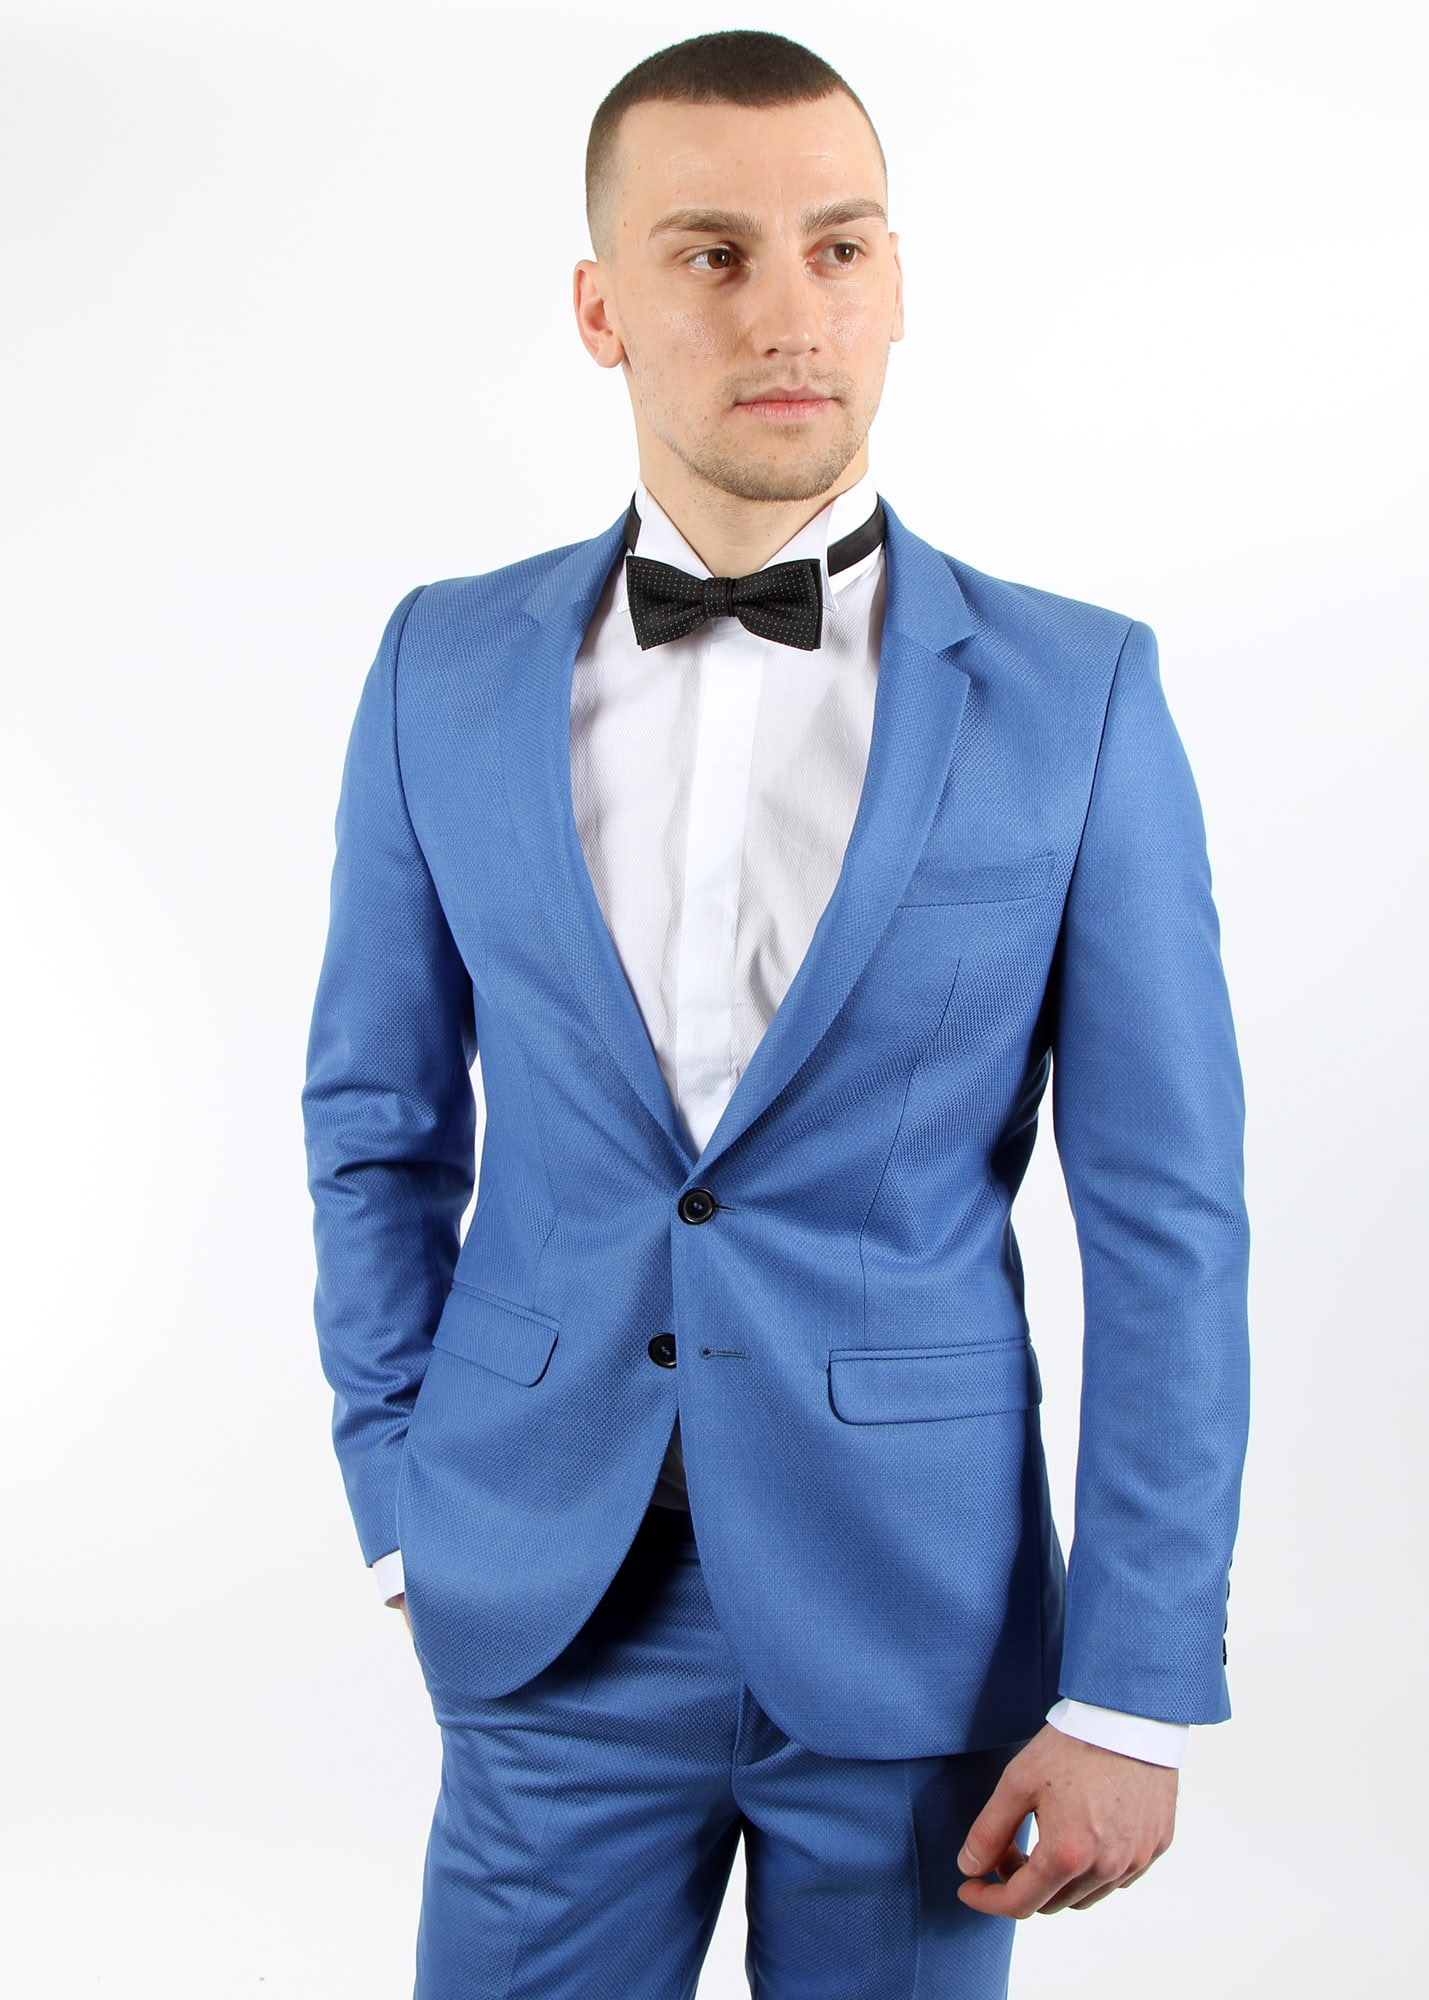 Shop for extreme slim fit and skinny mens suits. Get the best extra slim fit styles from brands such as Calvin Klein from Men's Wearhouse. Buy now! $30 off select tuxedo and suit rentals. Free shipping on every online order, no minimum. Exclusive offers for members. Close. Close. This text should be replaced in js. My Store.